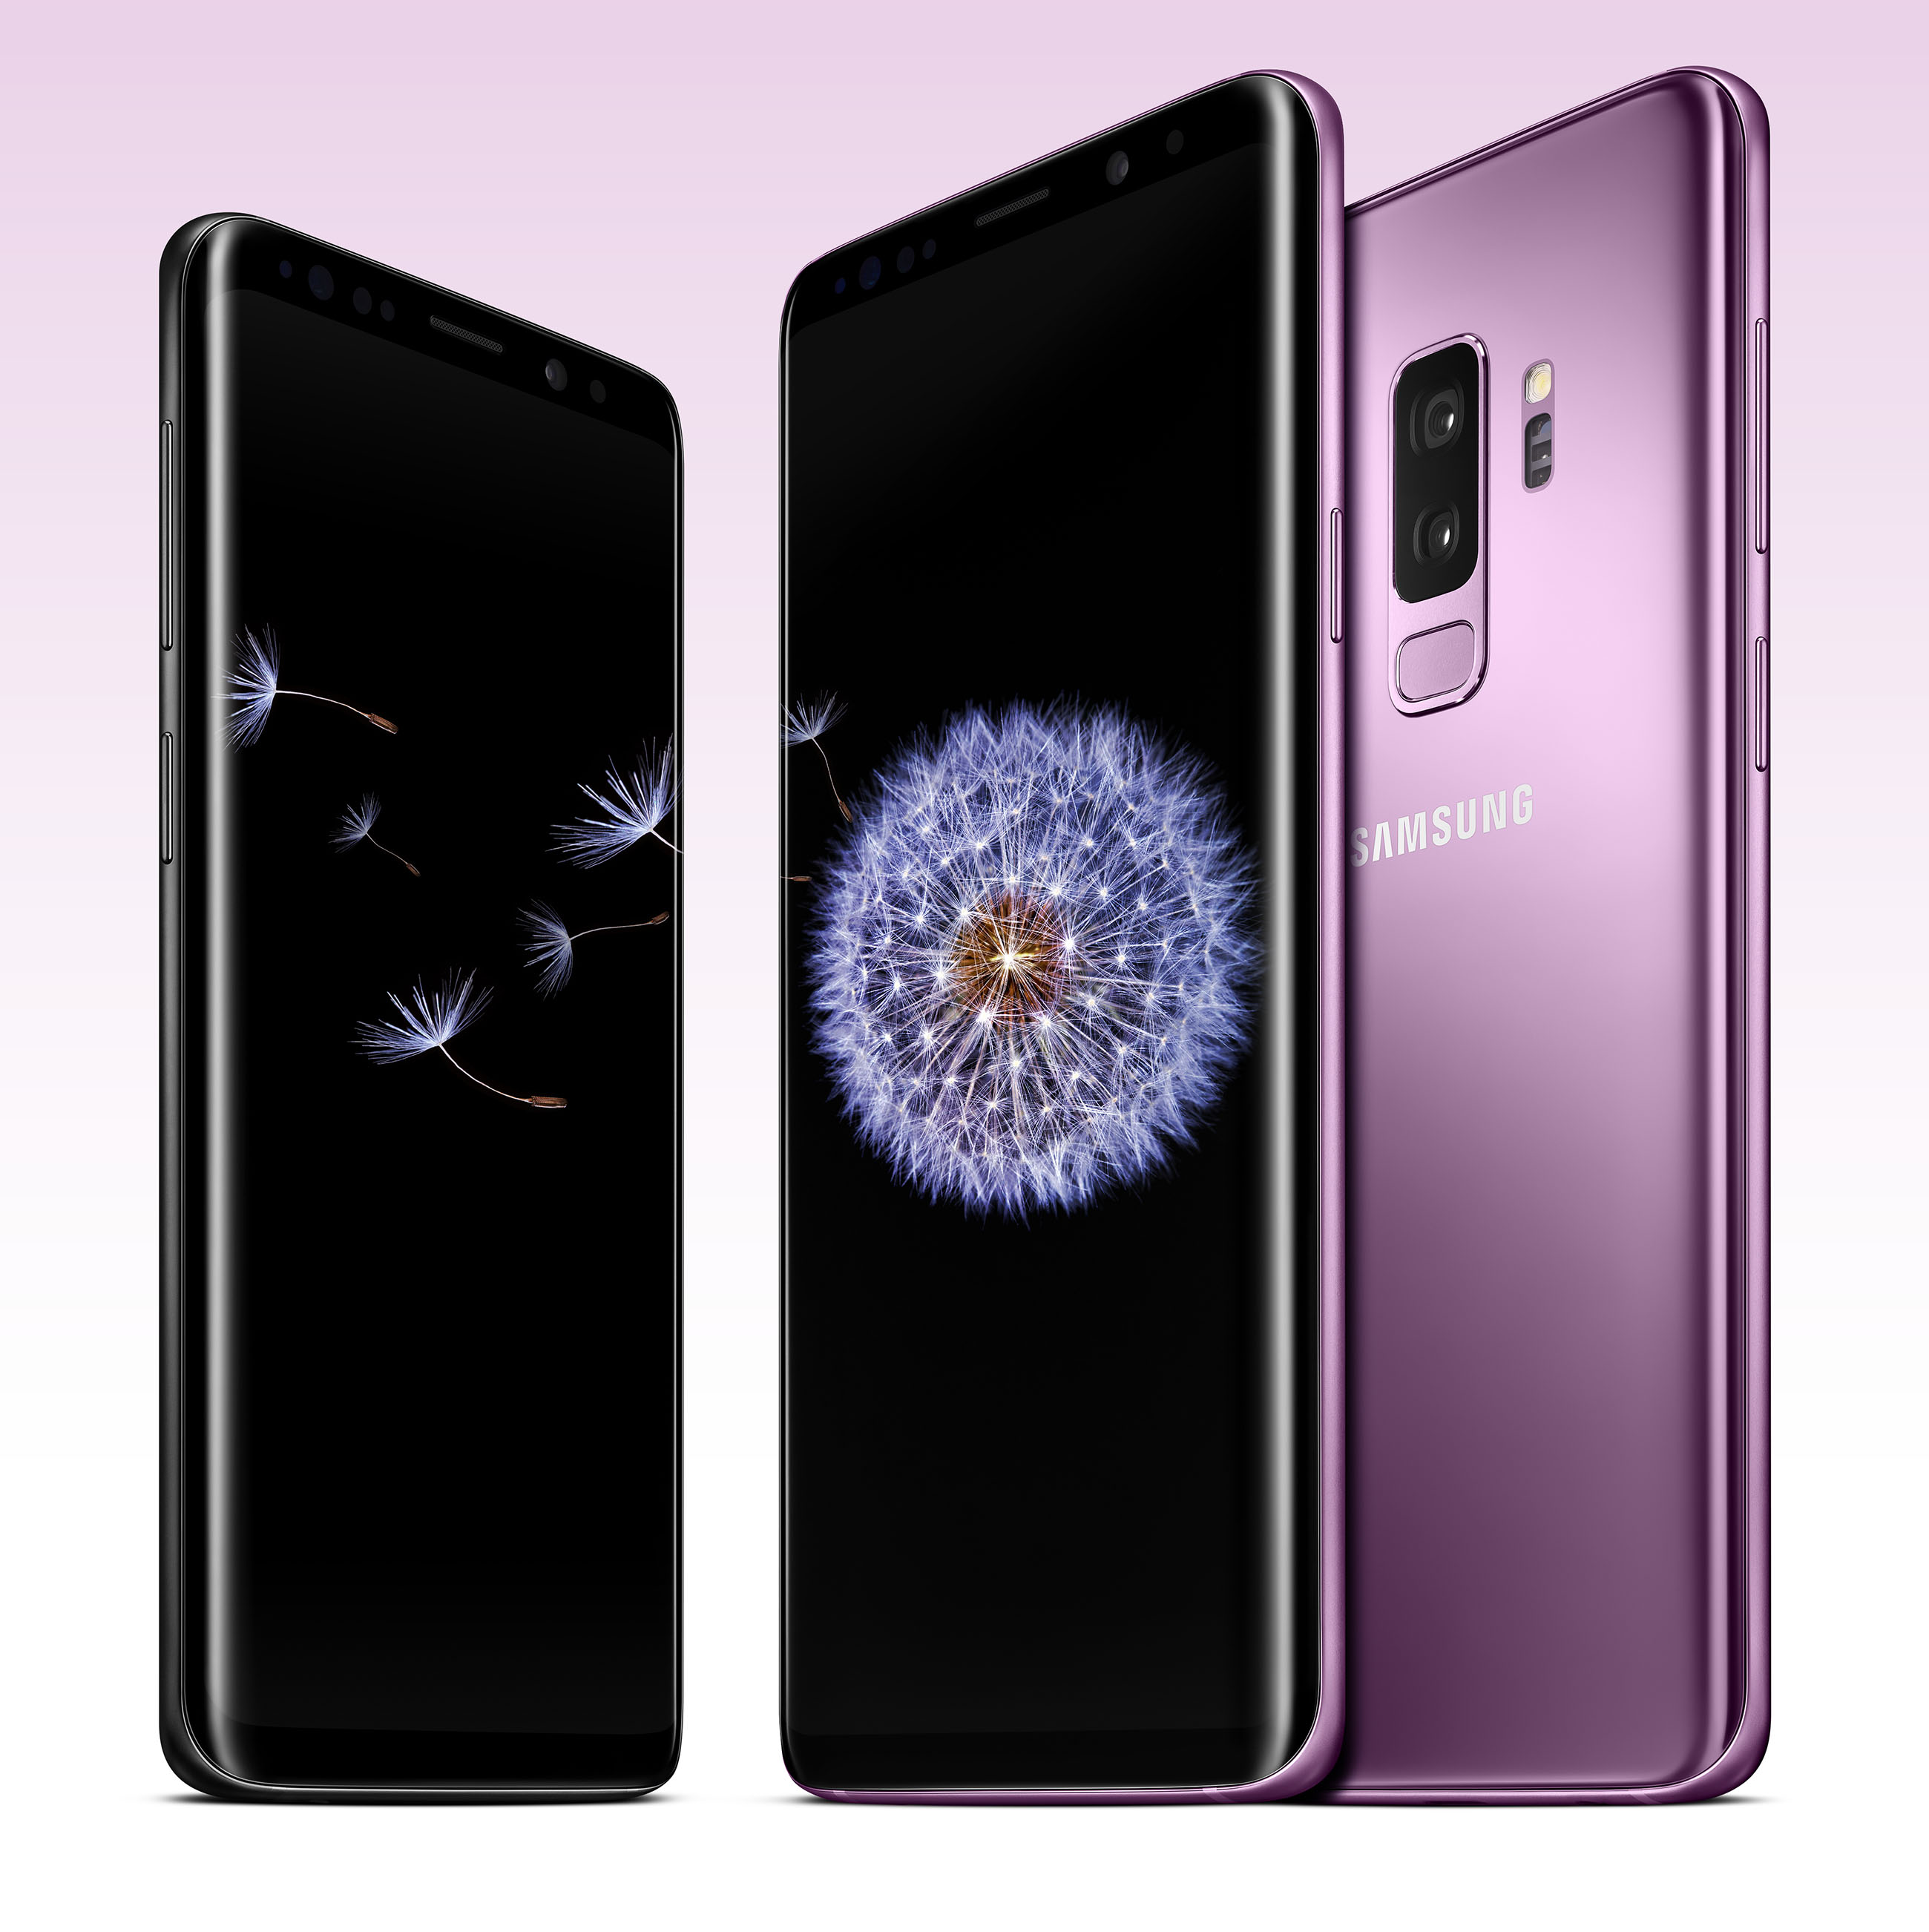 Pre-order the new SAMSUNG Galaxy S9 and S9+ NOW!